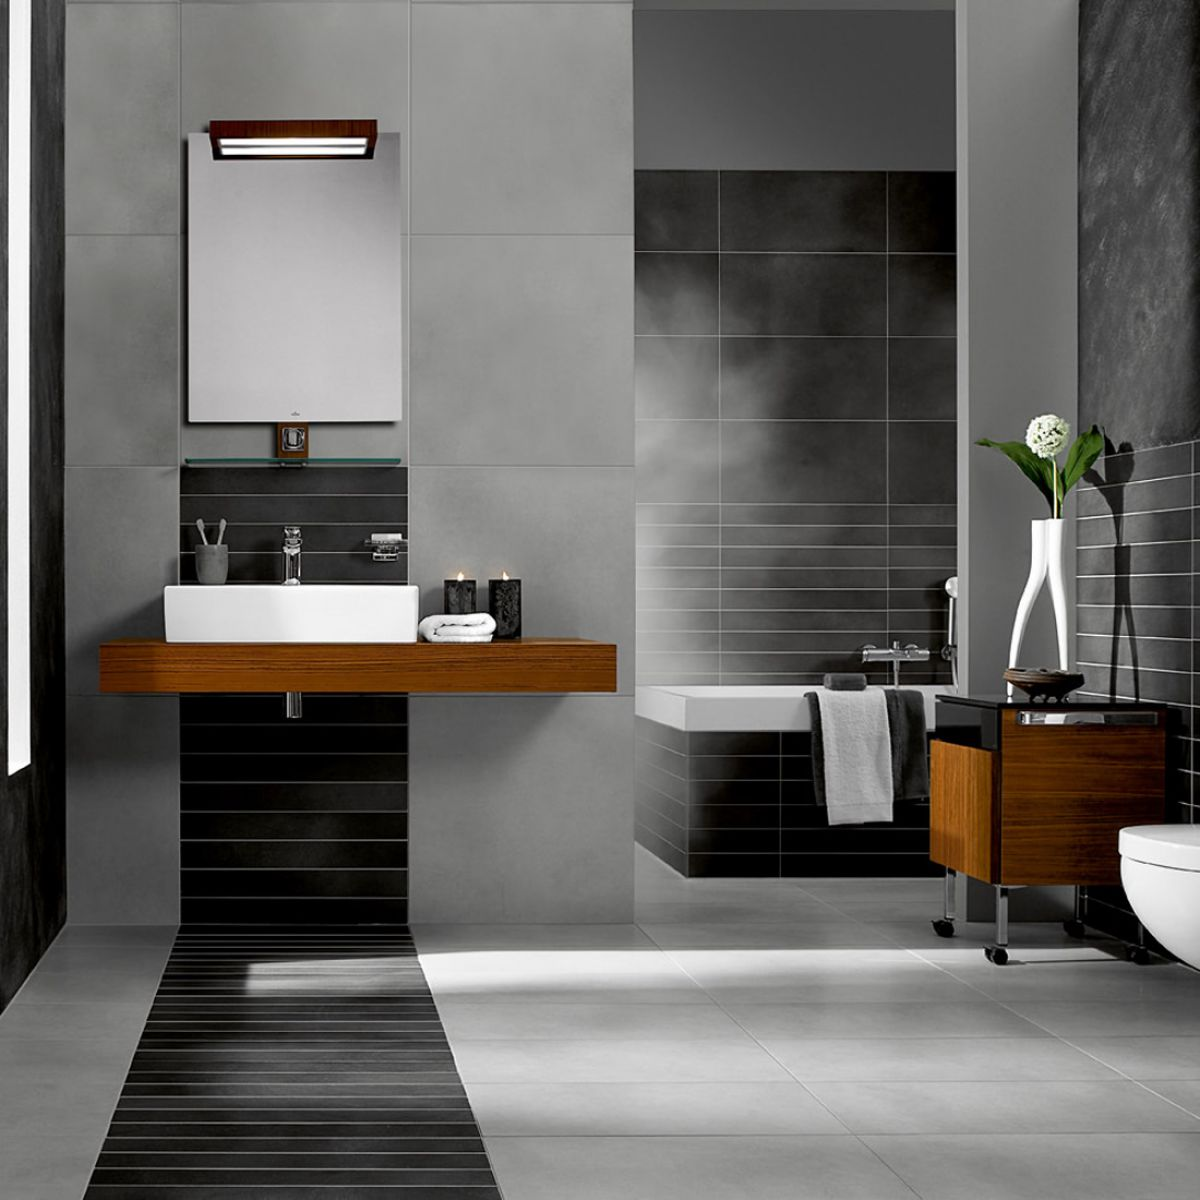 Kitchen Wall Tiles Uk Bathrooms Tiles Uk Bathroom Tile Ideas For Small Bathrooms Small